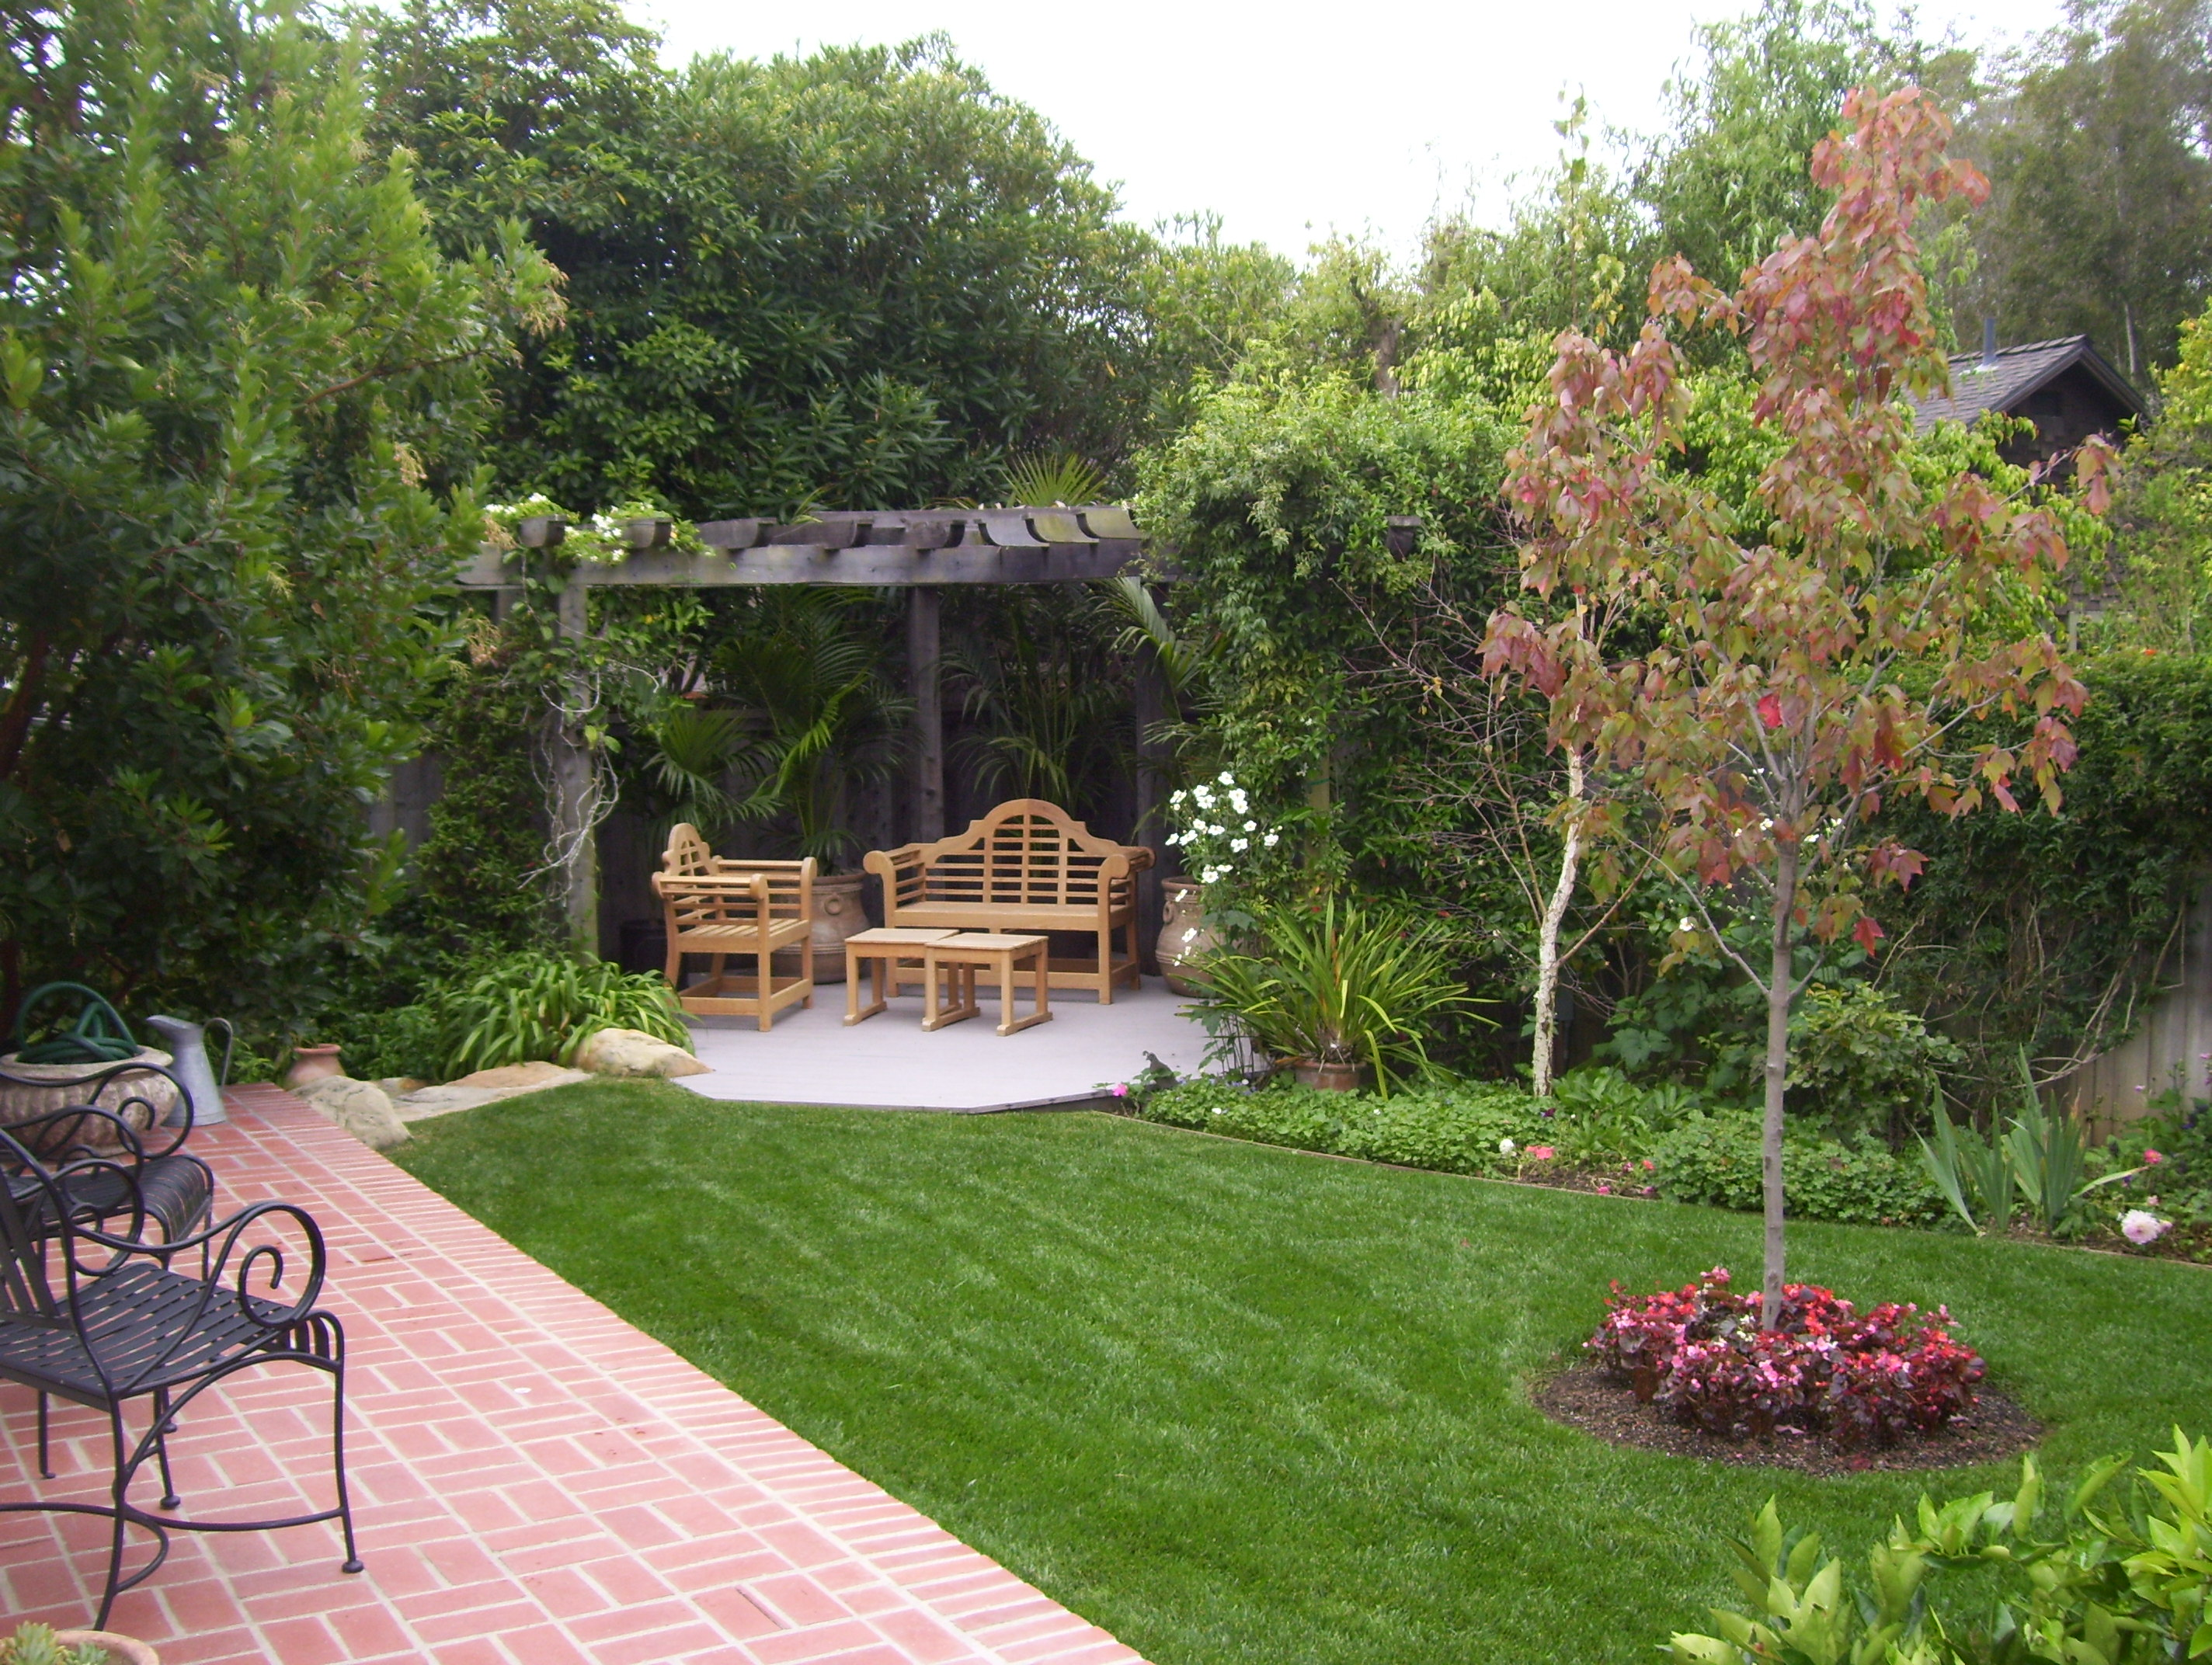 Santa barbara lawn and garden maintenenace landscape for Outdoor landscaping ideas